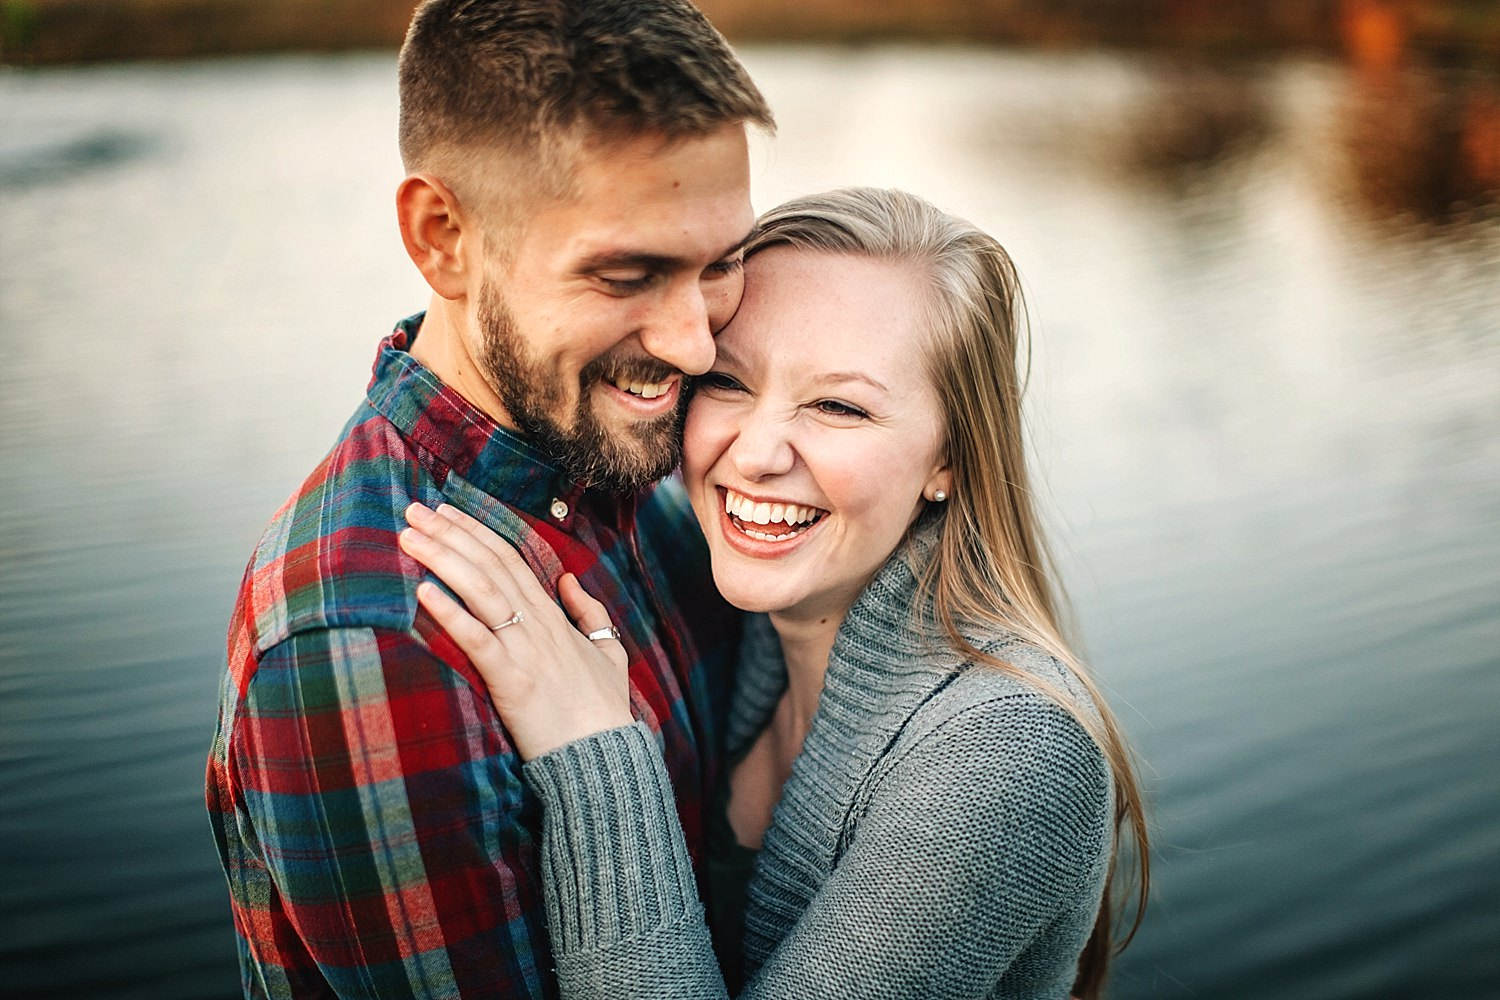 outdoor engagedment photos during golden hour in newark ohio